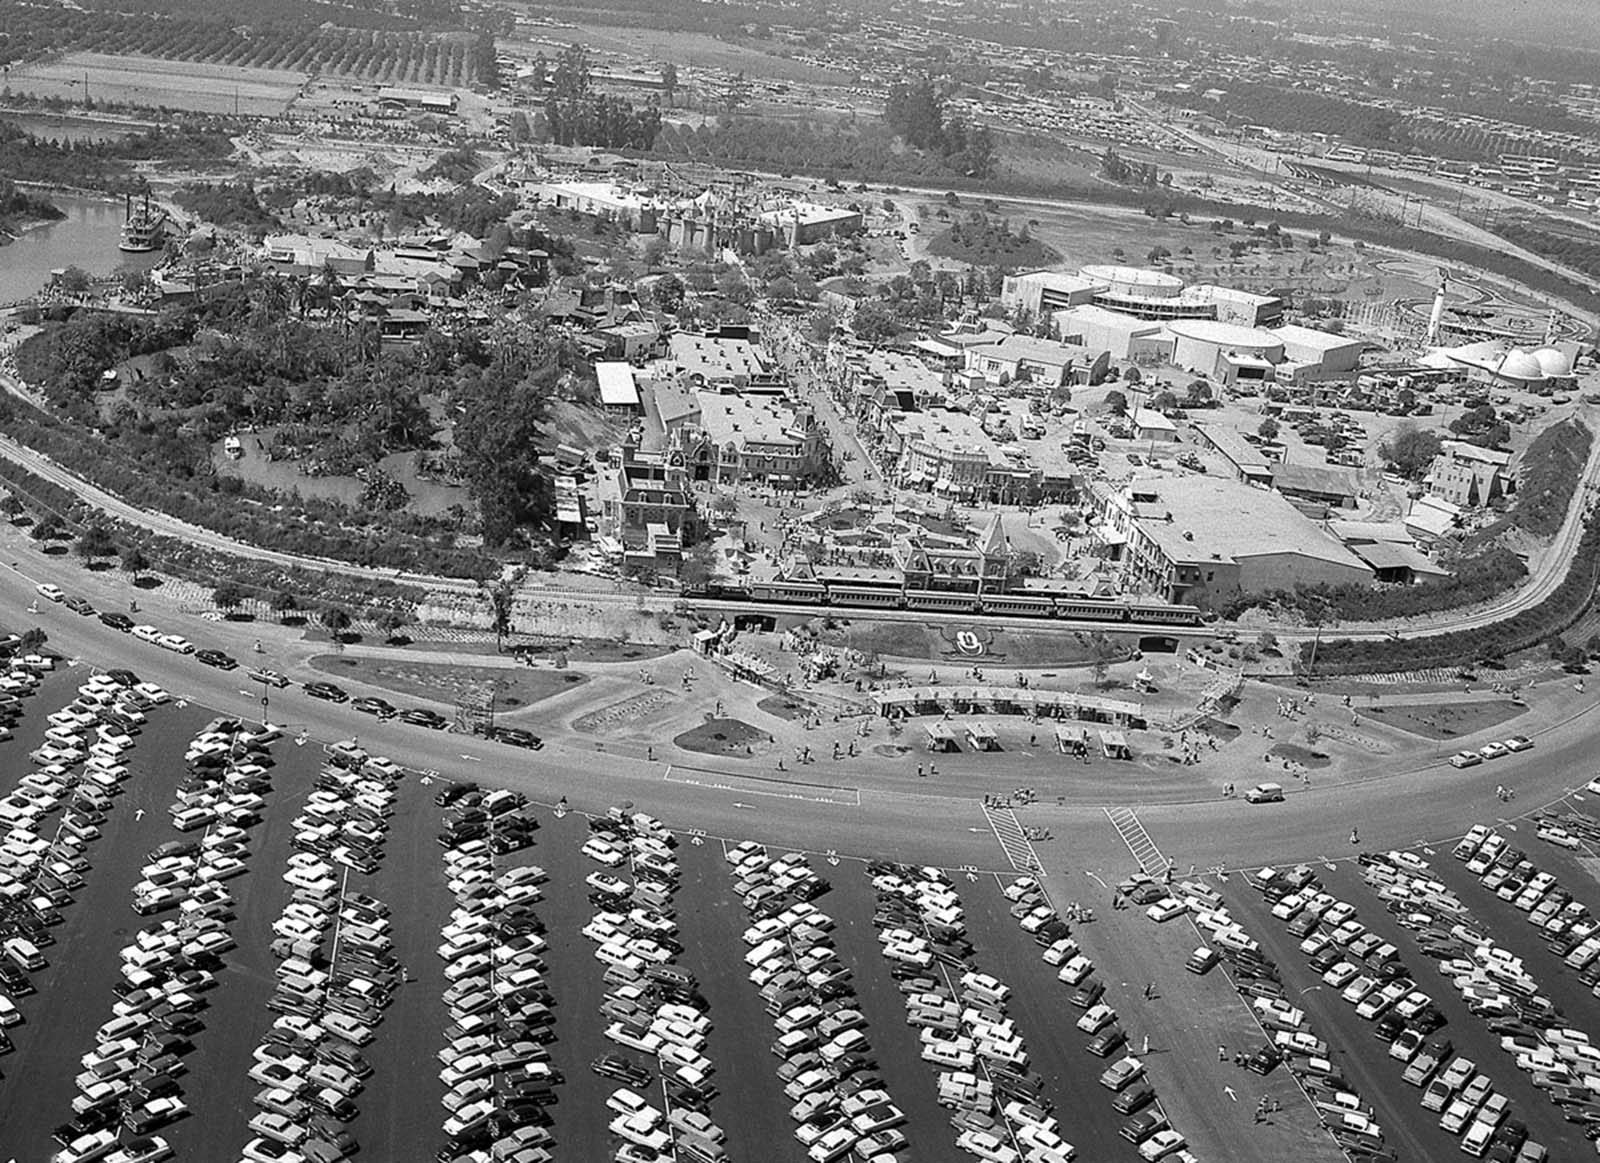 An aerial view shows Disneyland as guests attend opening-day festivities in Anaheim, California, on July 17, 1955.